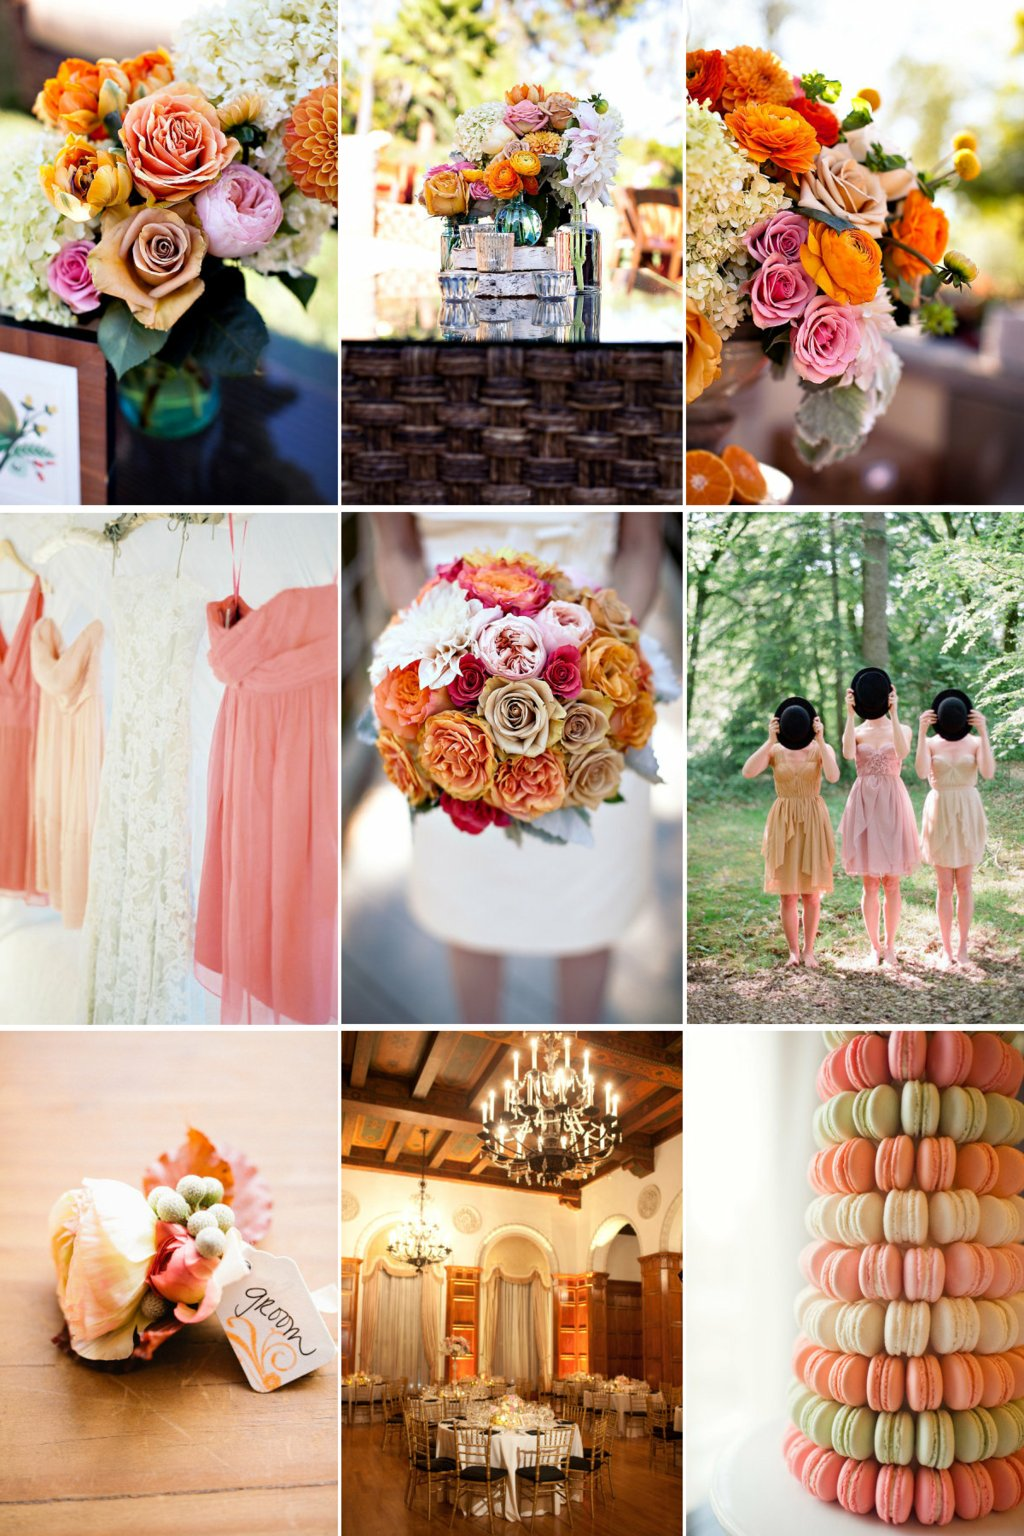 Wedding-color-inspiration-dusty-rose-orange-soft-pink-tan.full